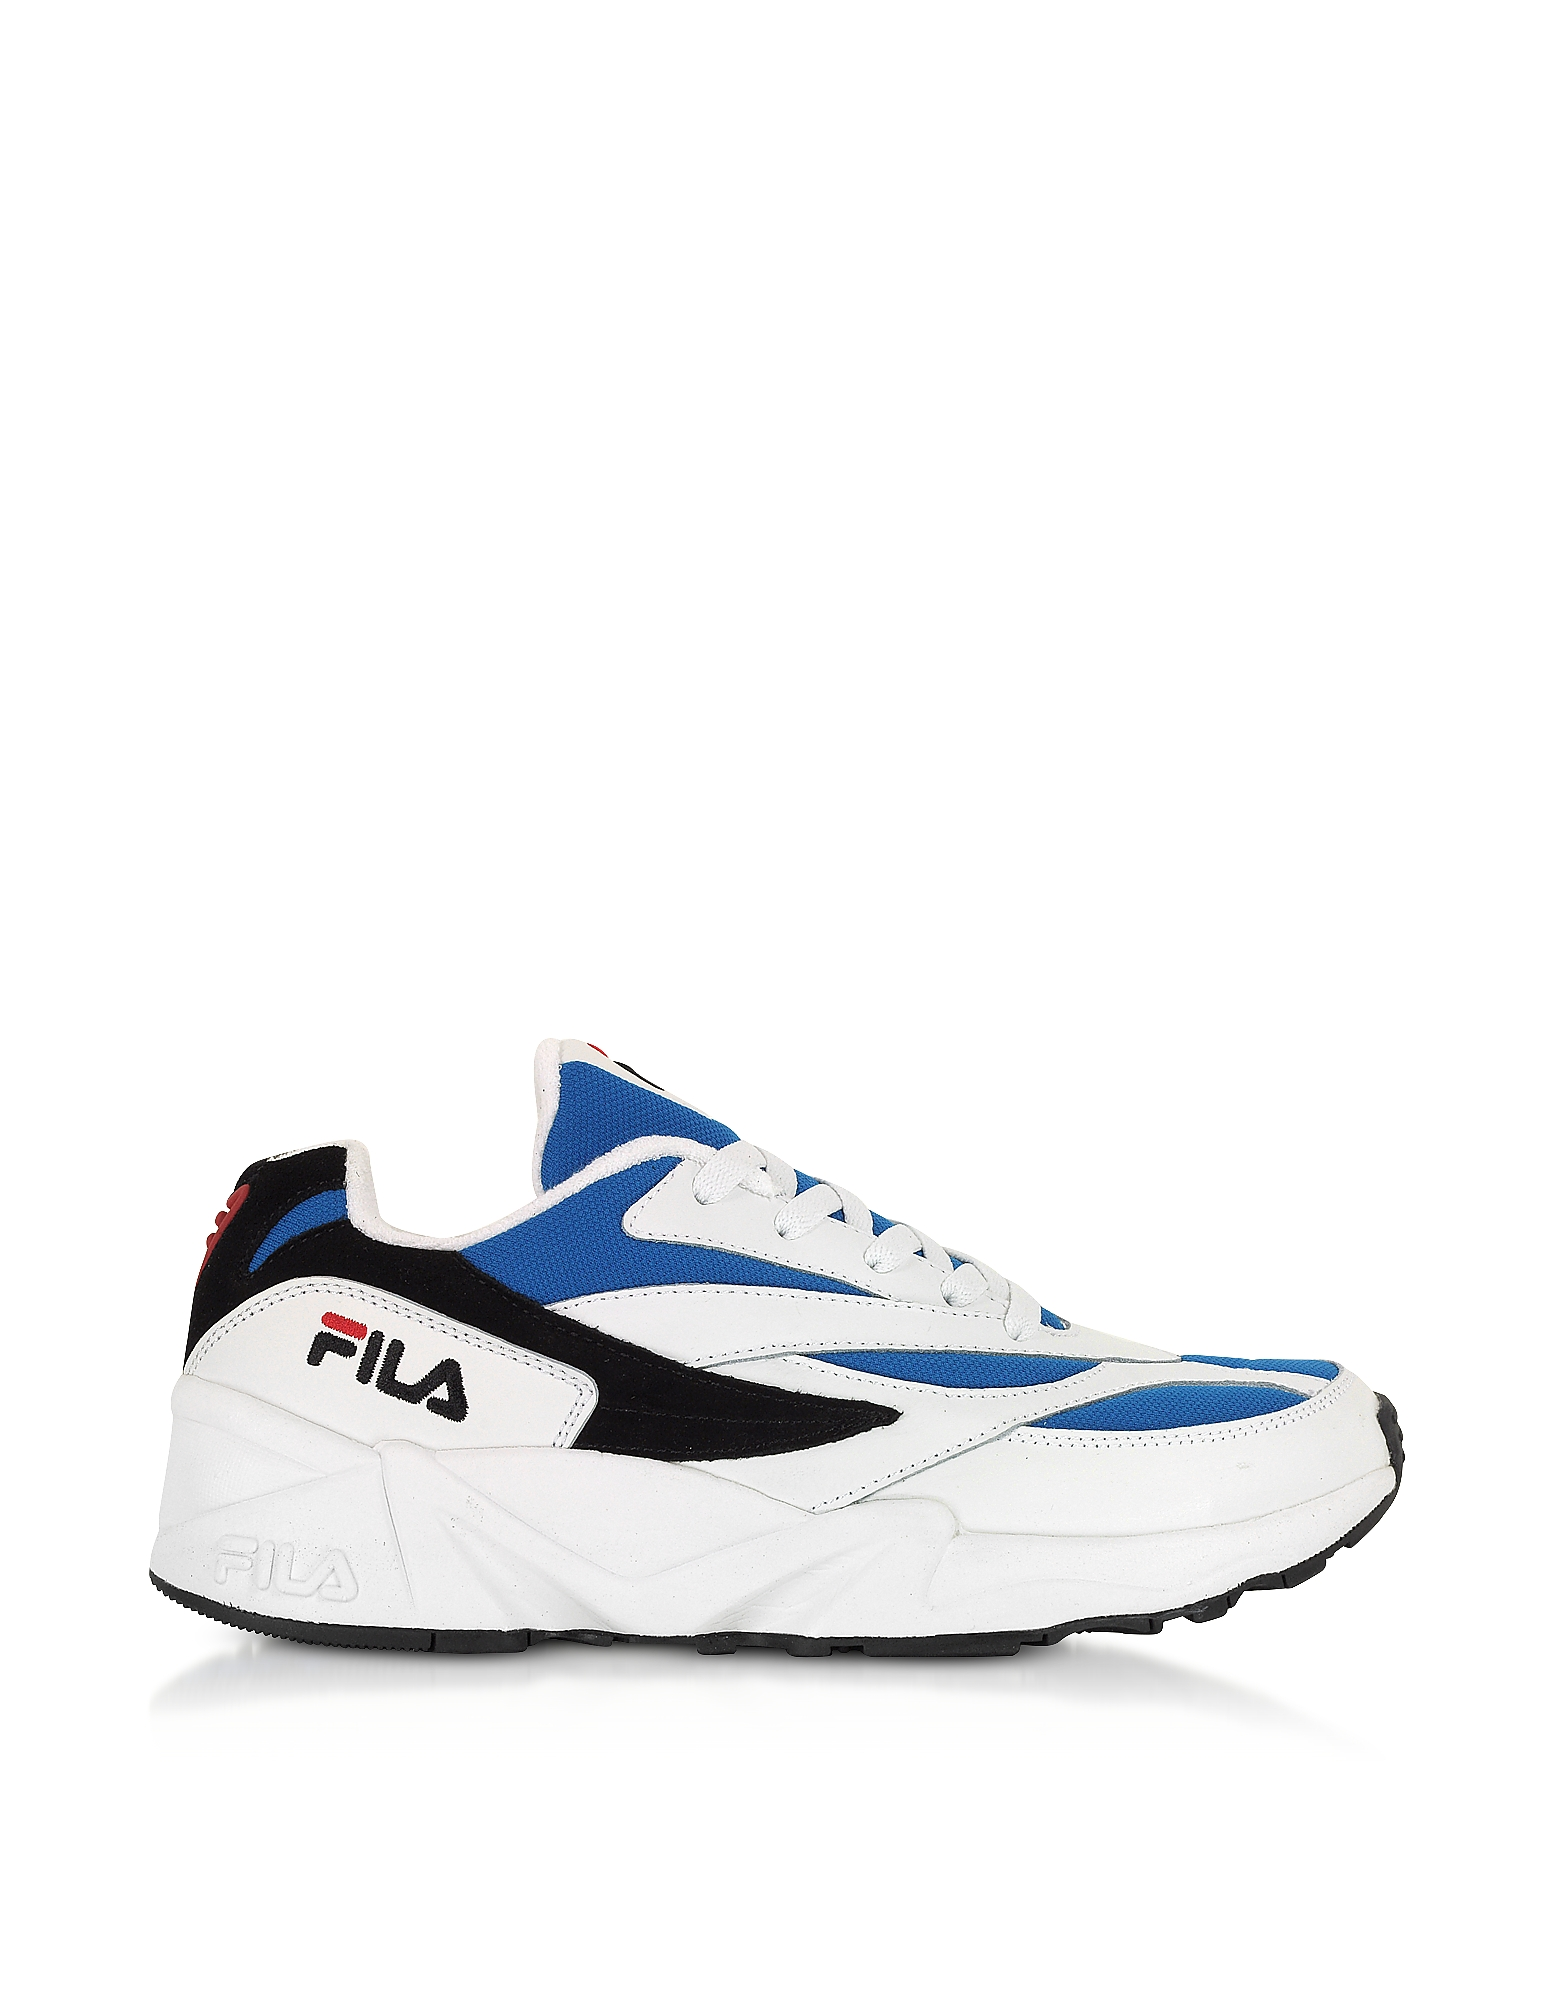 FILA Designer Shoes, V94M Low White & Electric Blue Men's Sneakers